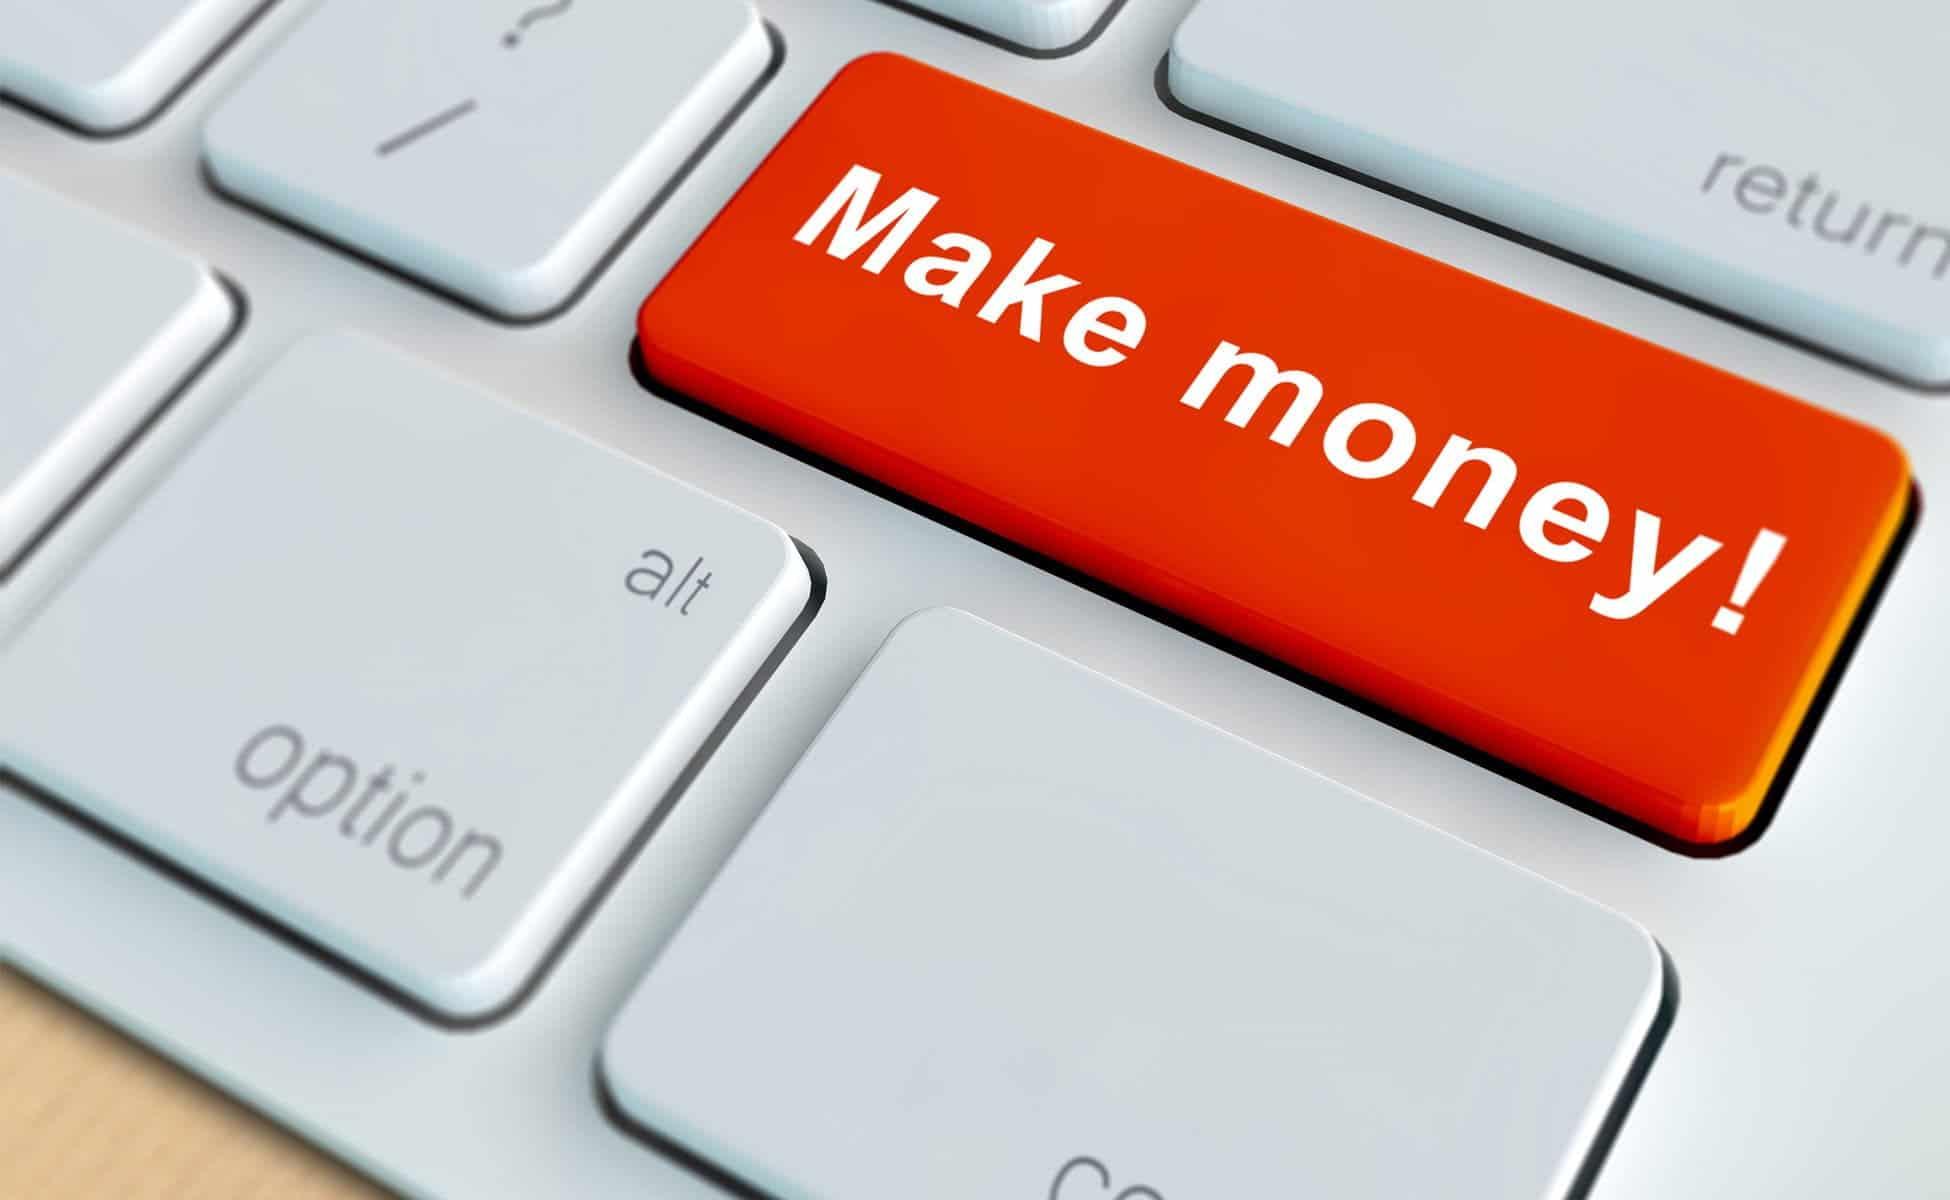 Red button with make money slogan, exactly what micro job sites promote